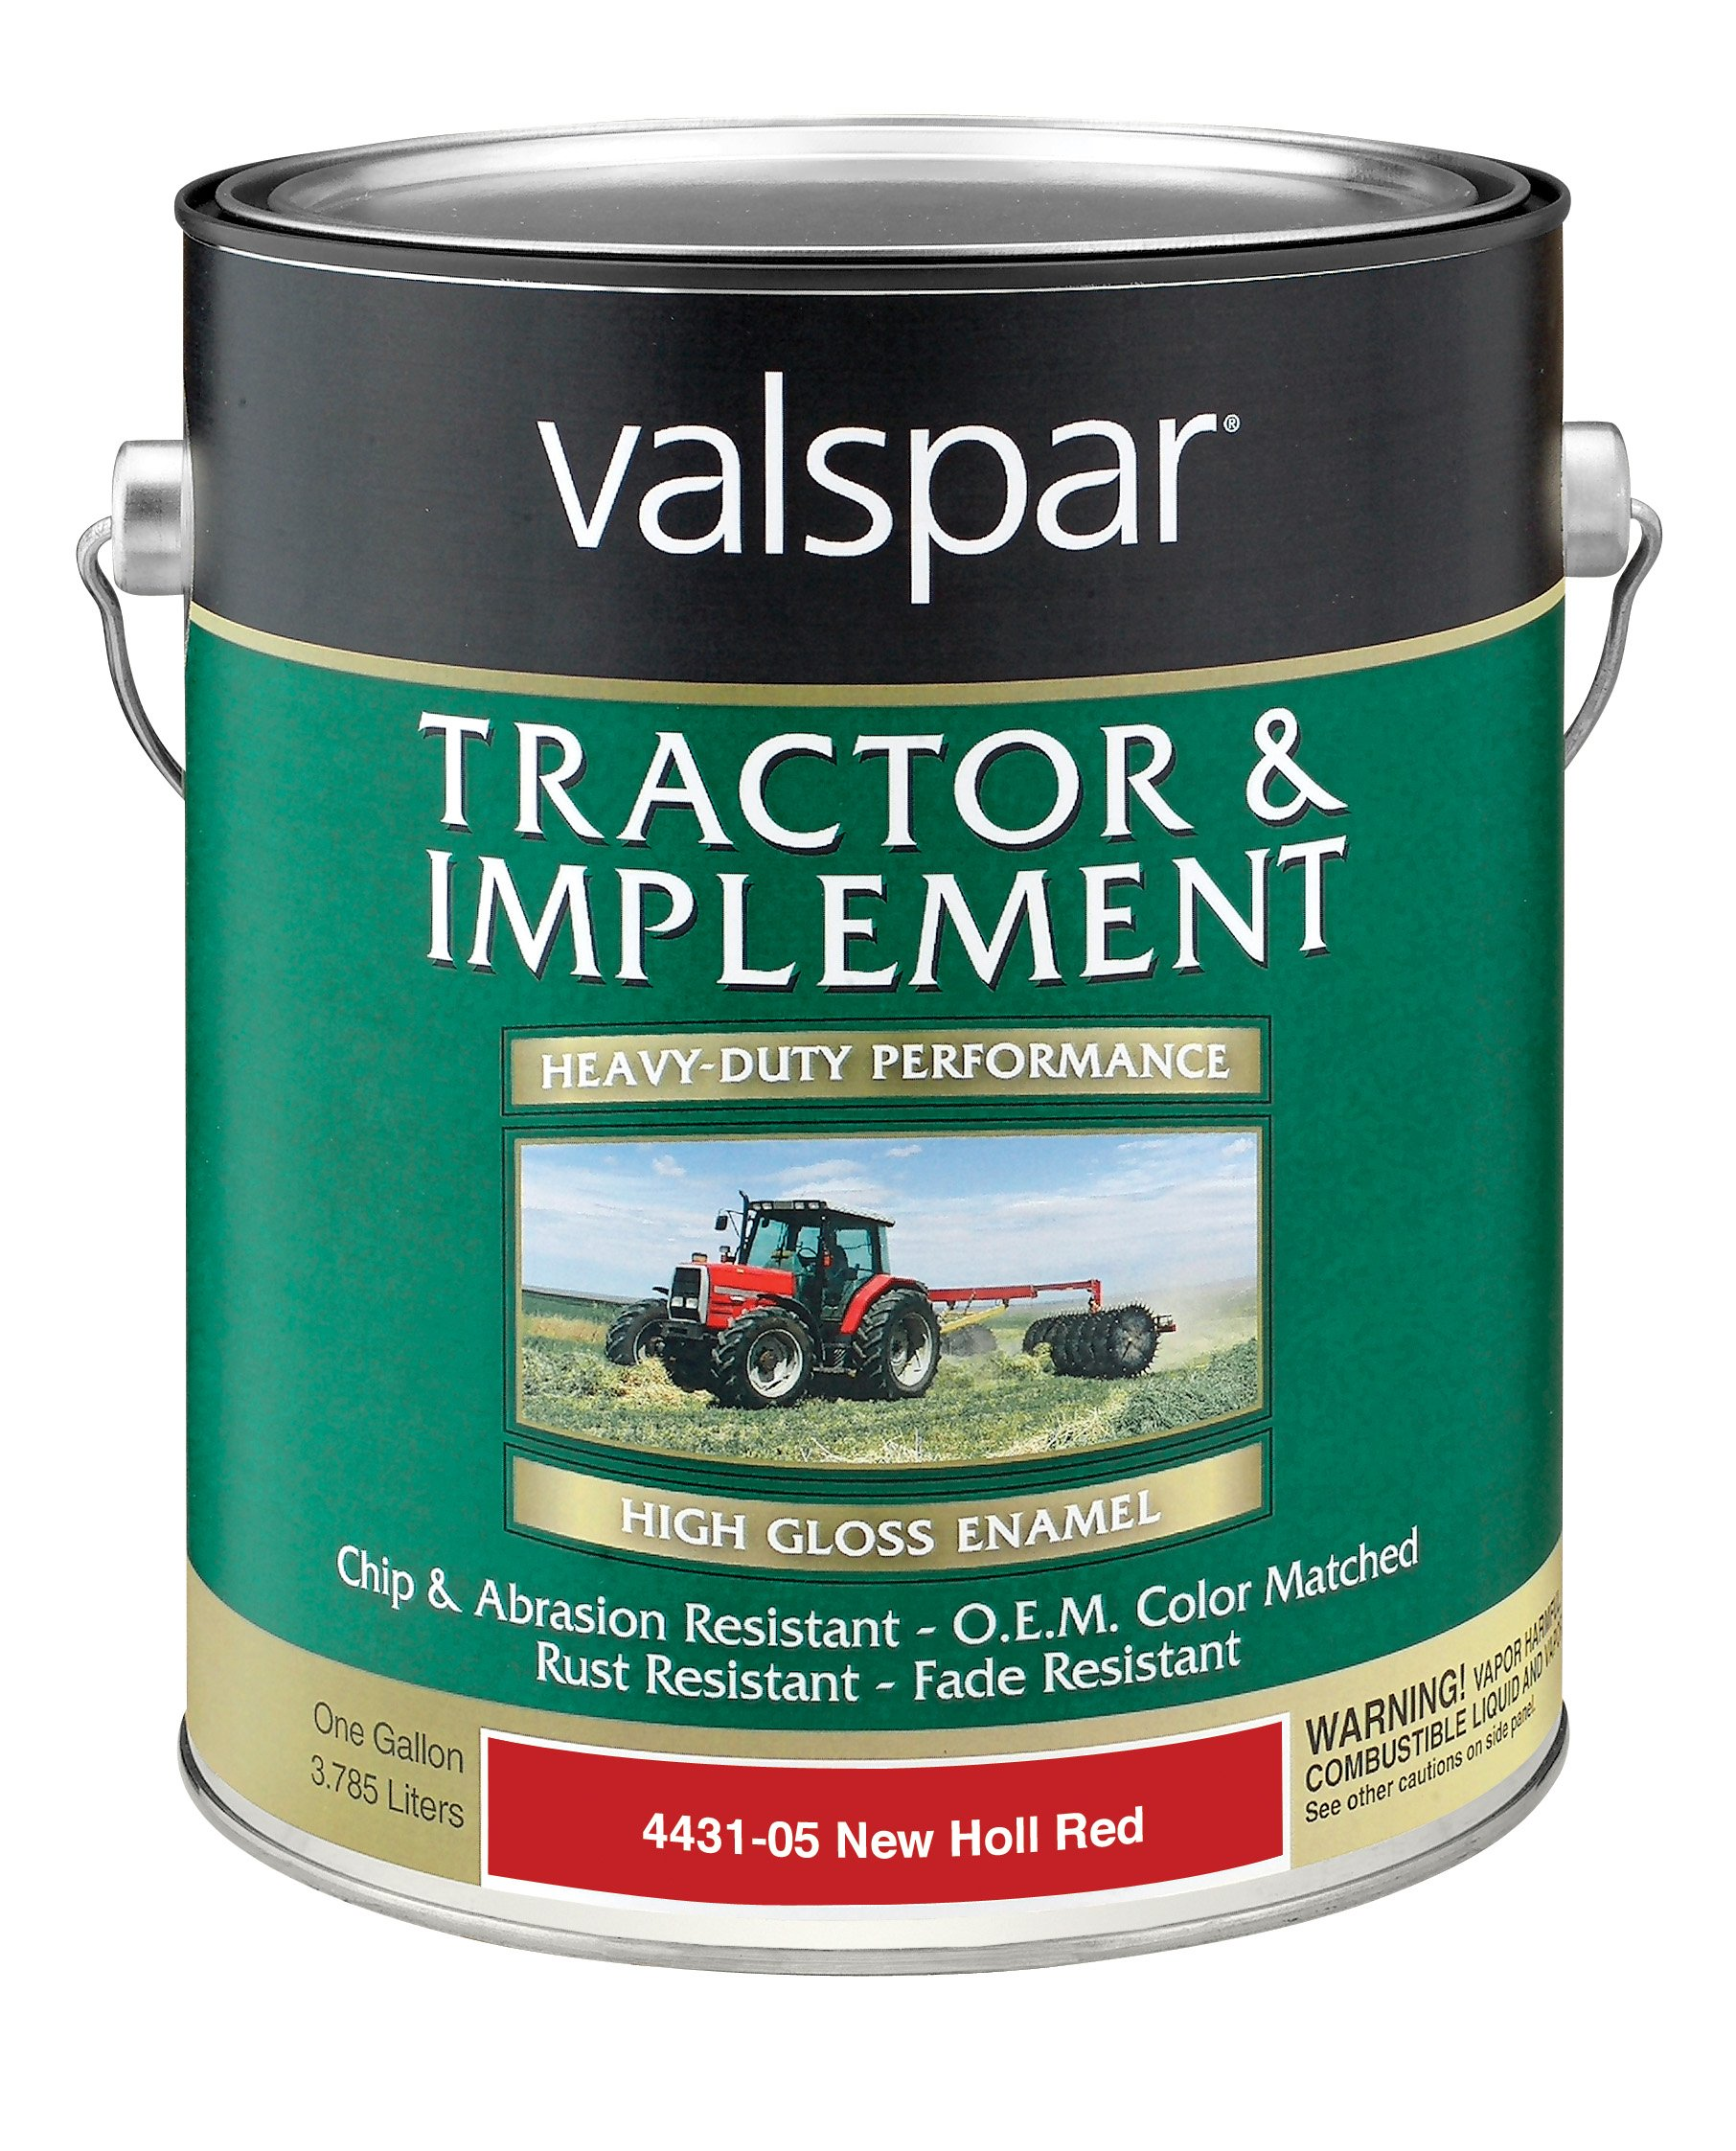 Valspar 4431-05 New Holl Red Tractor and Implement Paint - 1 Gallon